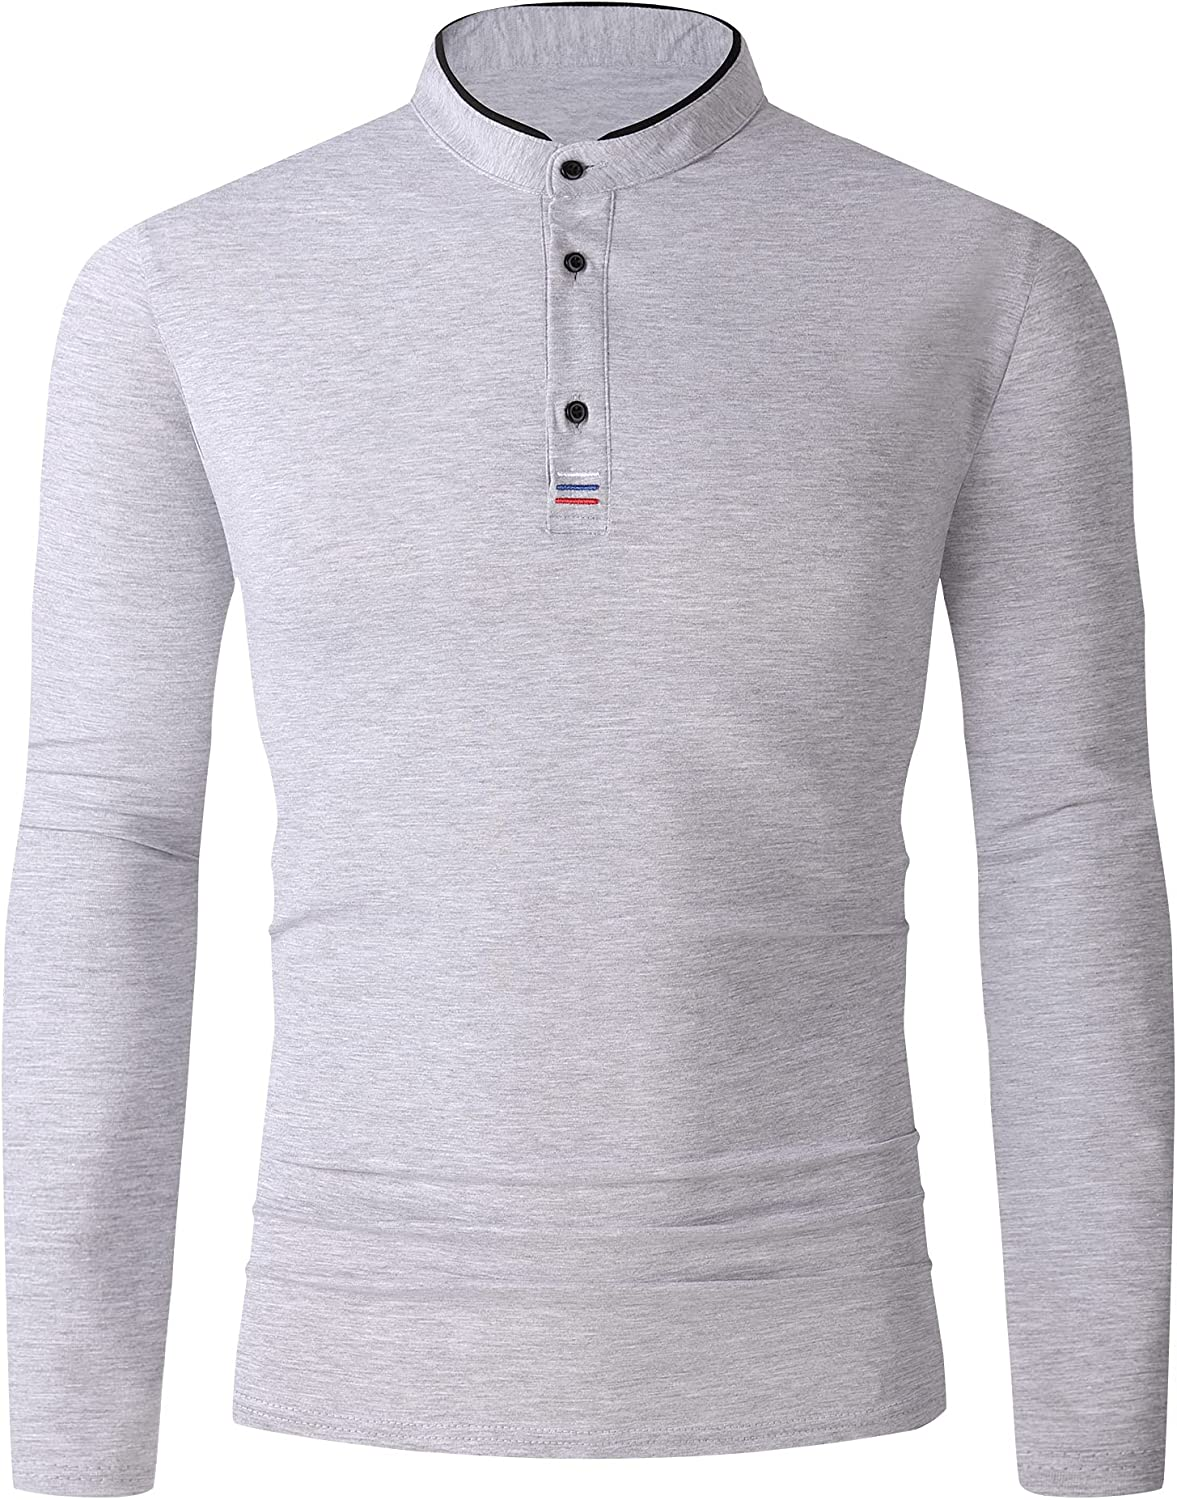 Esabel.C Mens Great interest Long Sleeve Polo Fashion Fit Shirts Casual Regular Cheap super special price